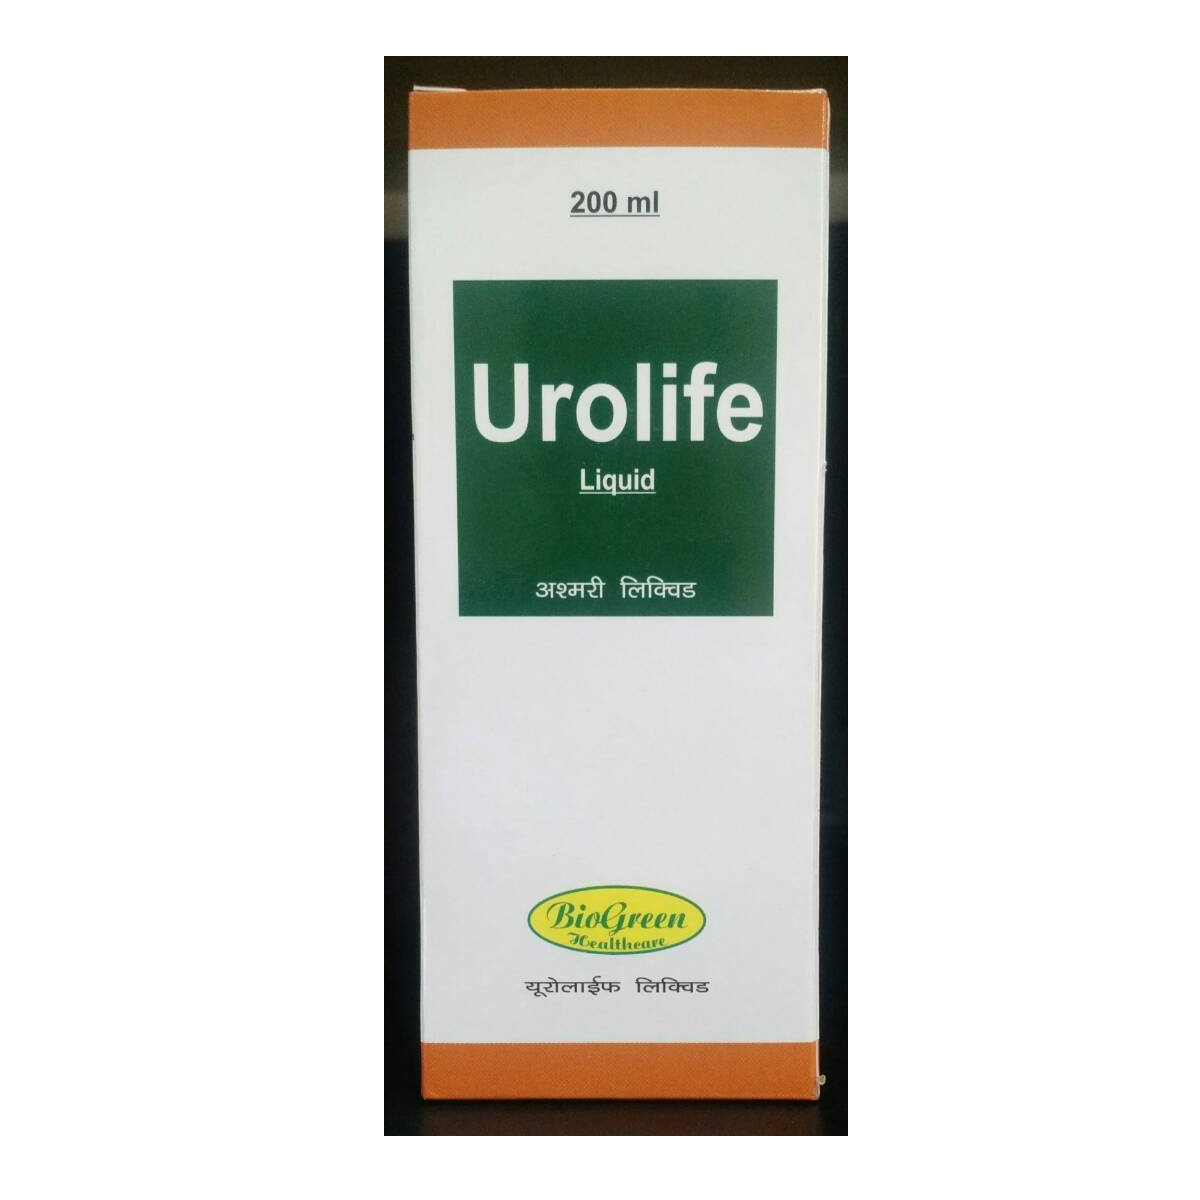 Urolife Liquid In Vivek Vihar